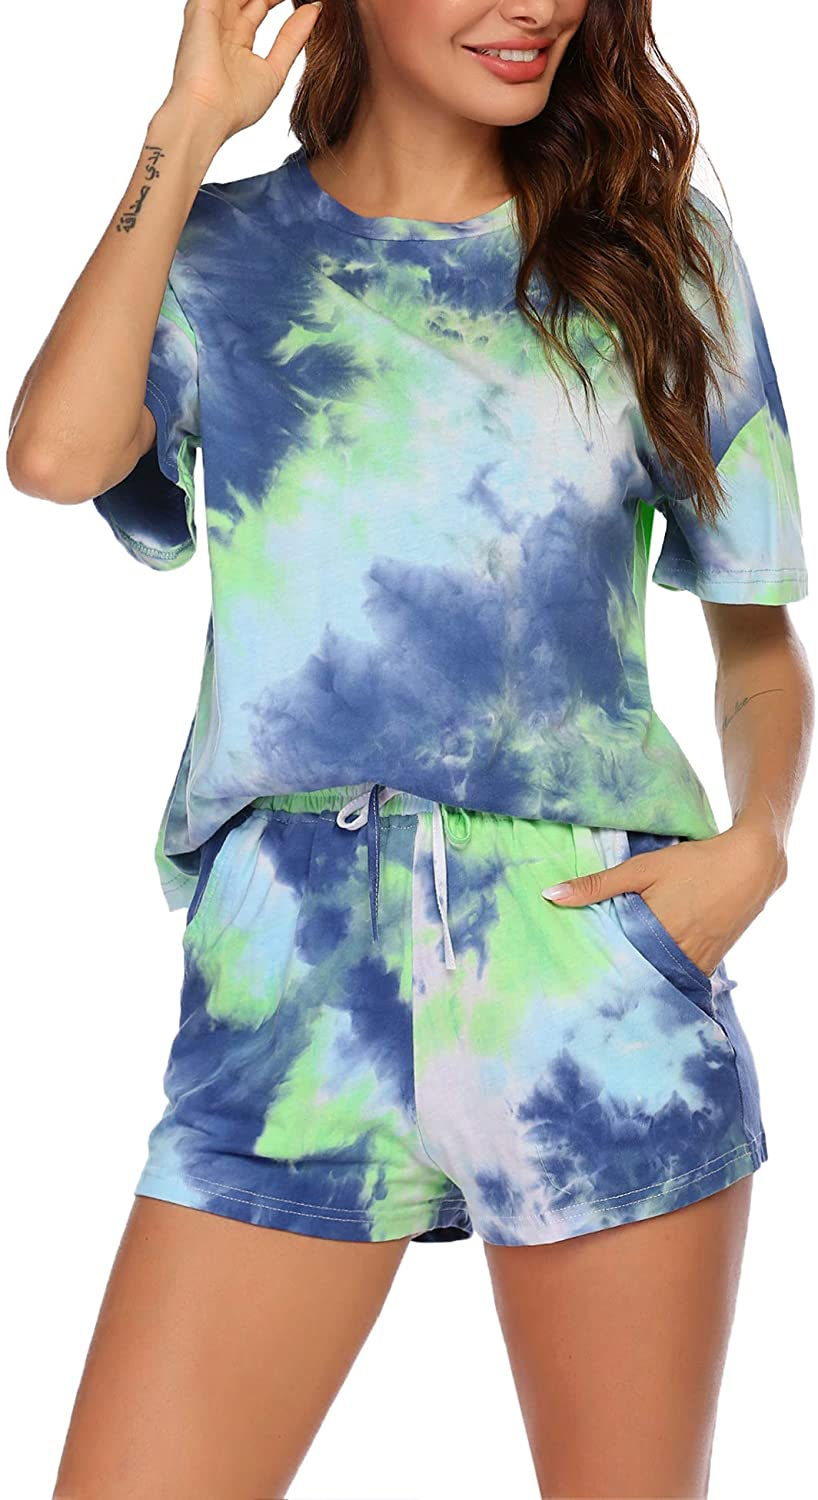 Hotouch Womens Tie Dye Printed Pajamas Set Cotton Lounge Sets Short Sleeve Tops and Shorts 2 Piece Sleepwear Pj Sets